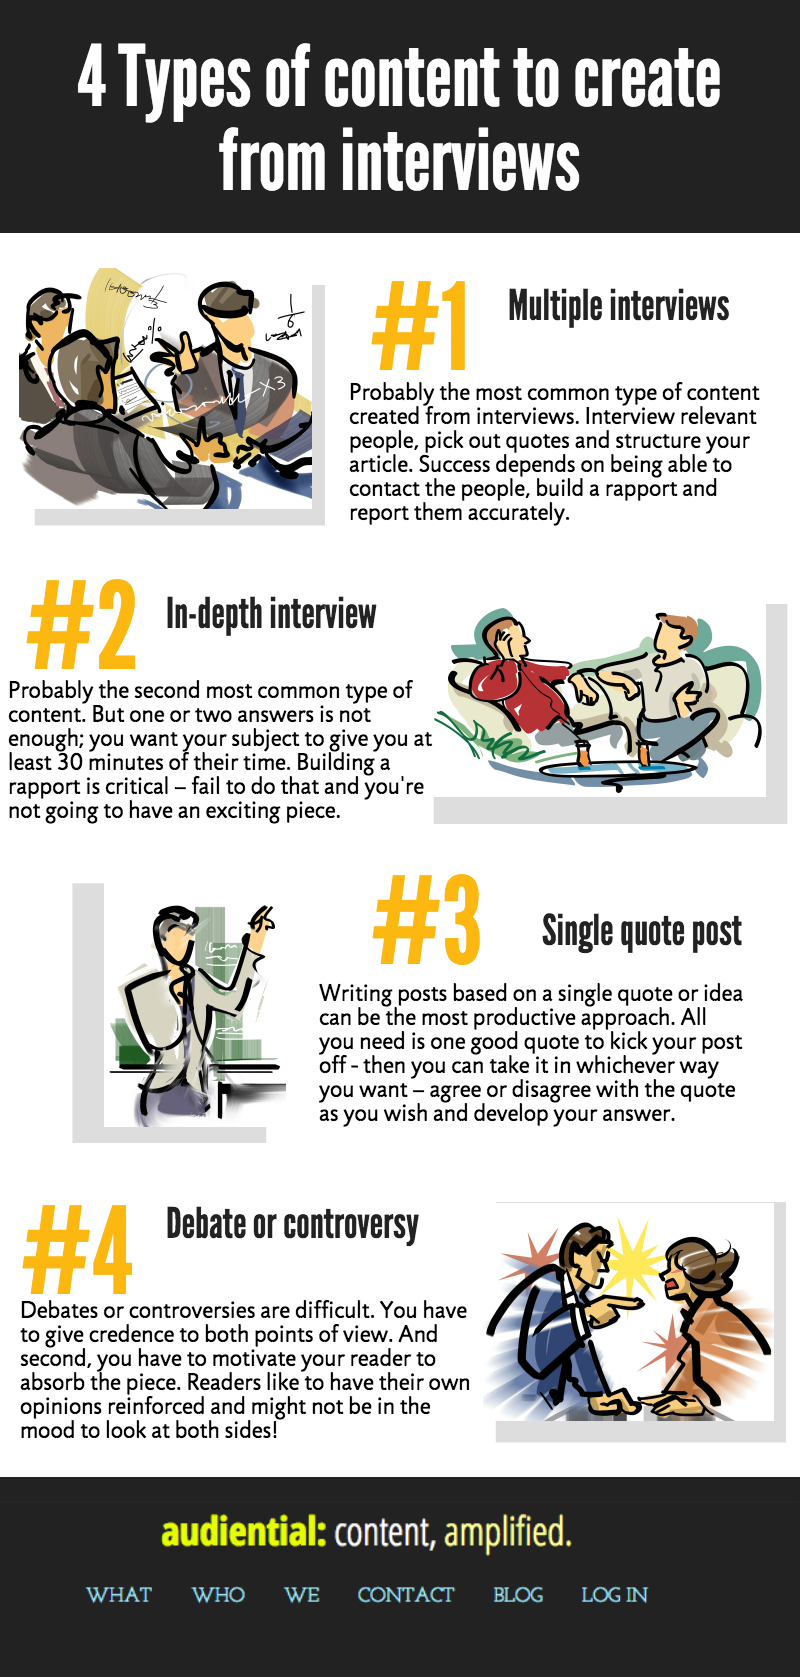 Create these 4 types of content from interviews – audiential